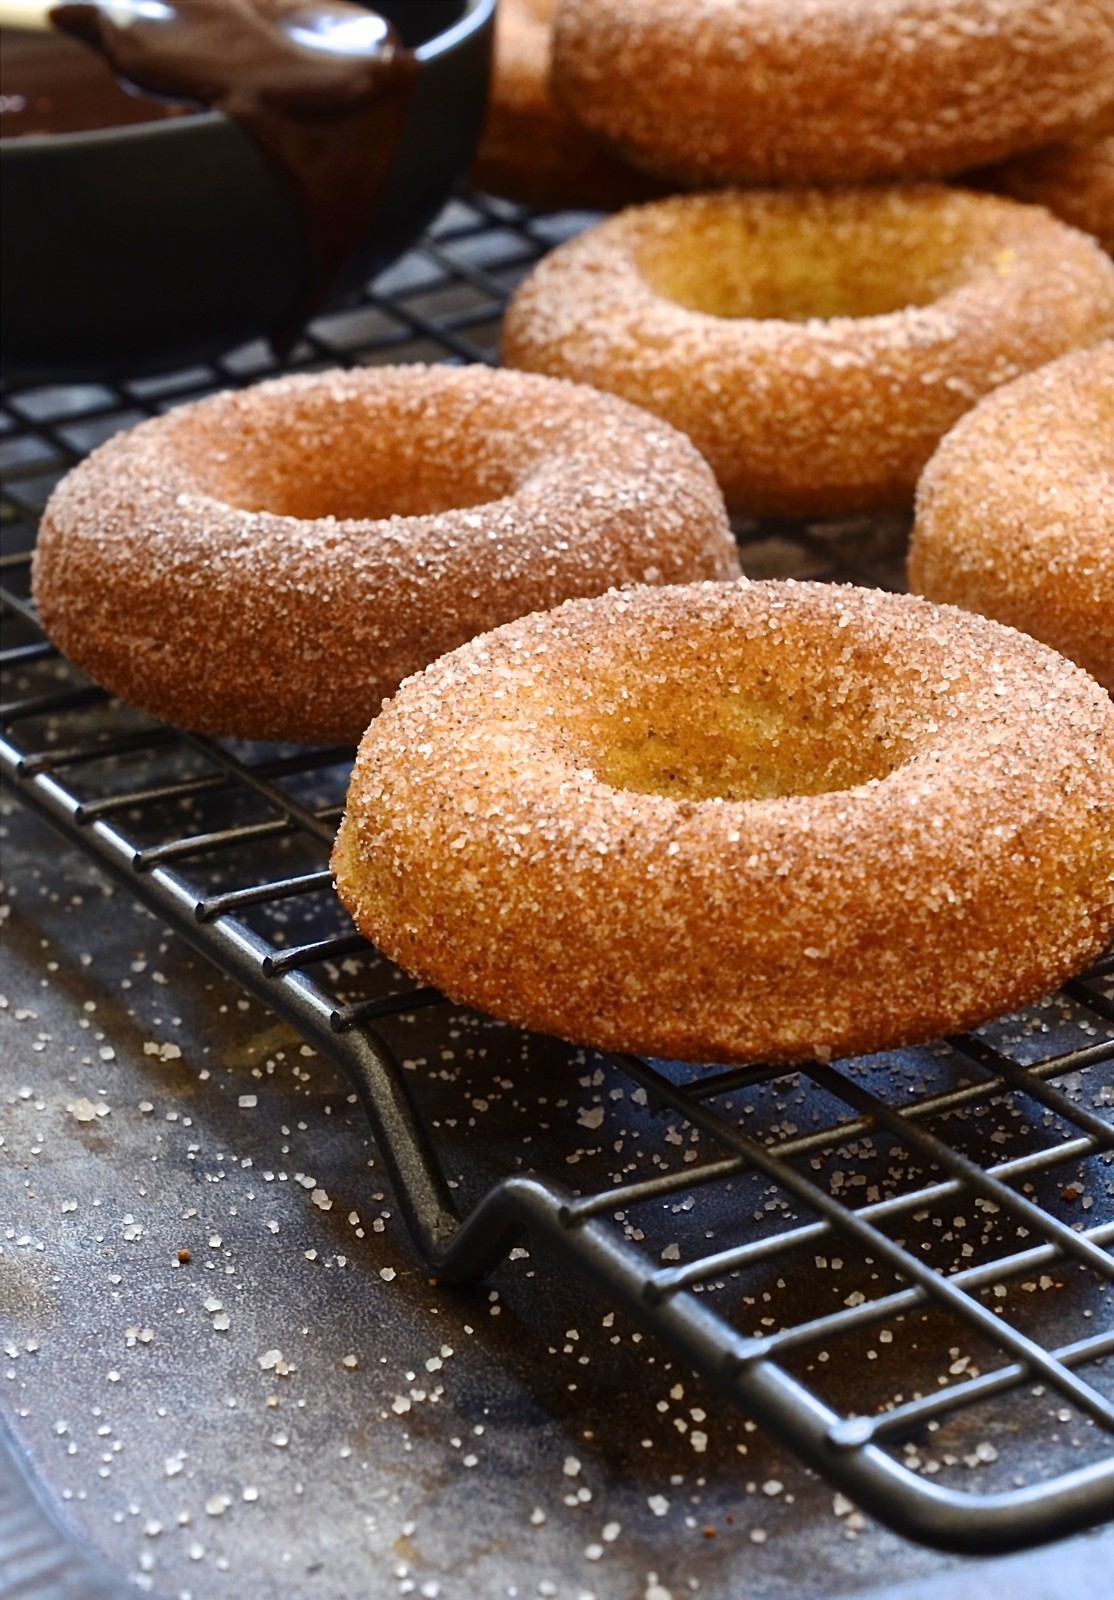 Baked donuts with cinnamon